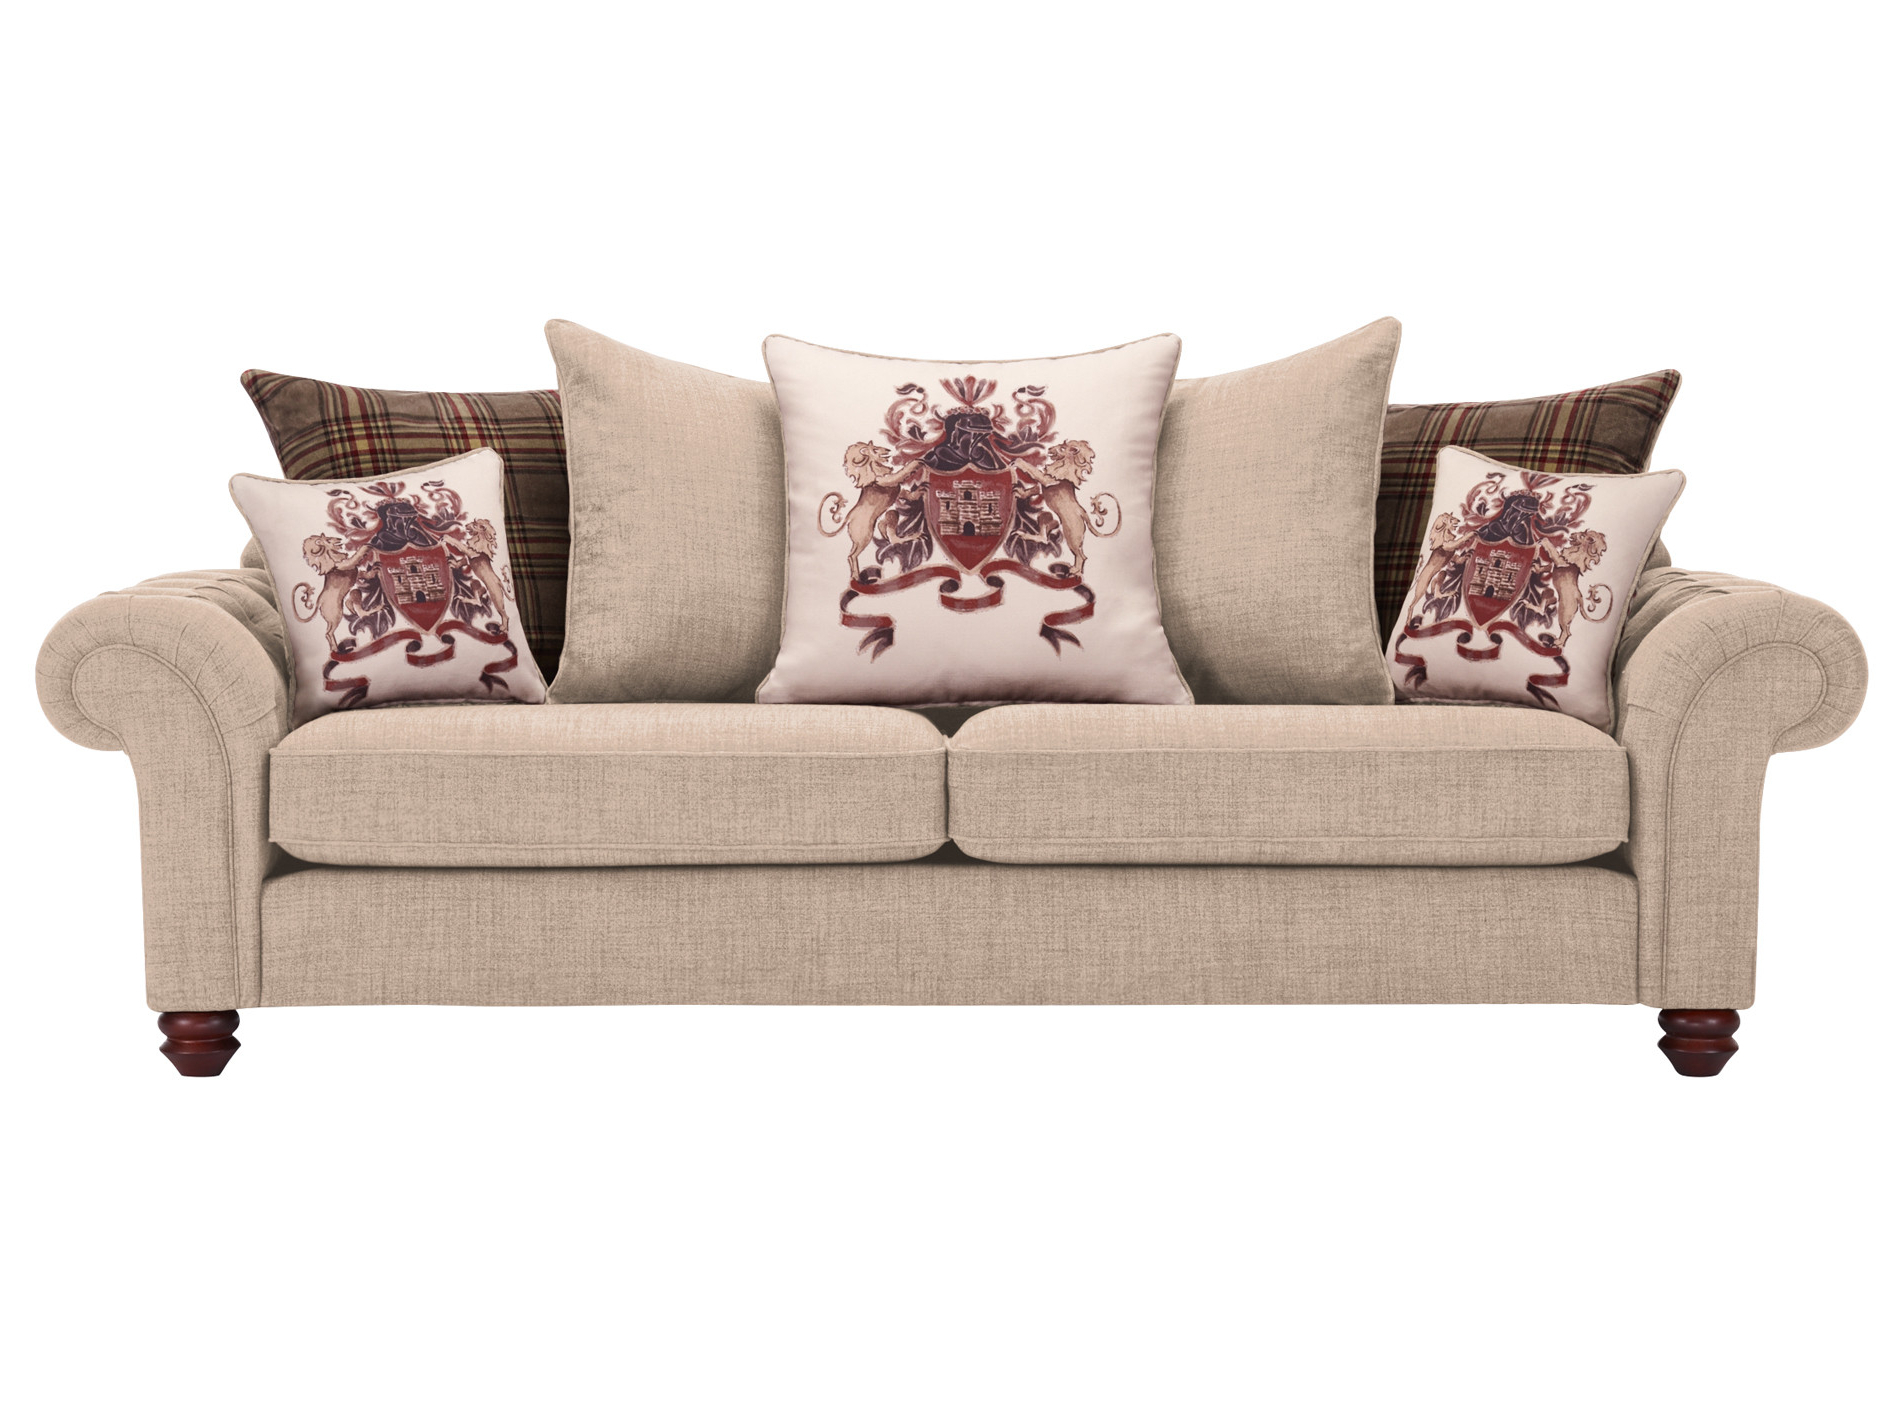 Most Recent Lyvia Pillowback Sofa Sectional Sofas Inside Sandringham 4 Seater Pillow Back Sofa In Beige With Brown (View 5 of 25)